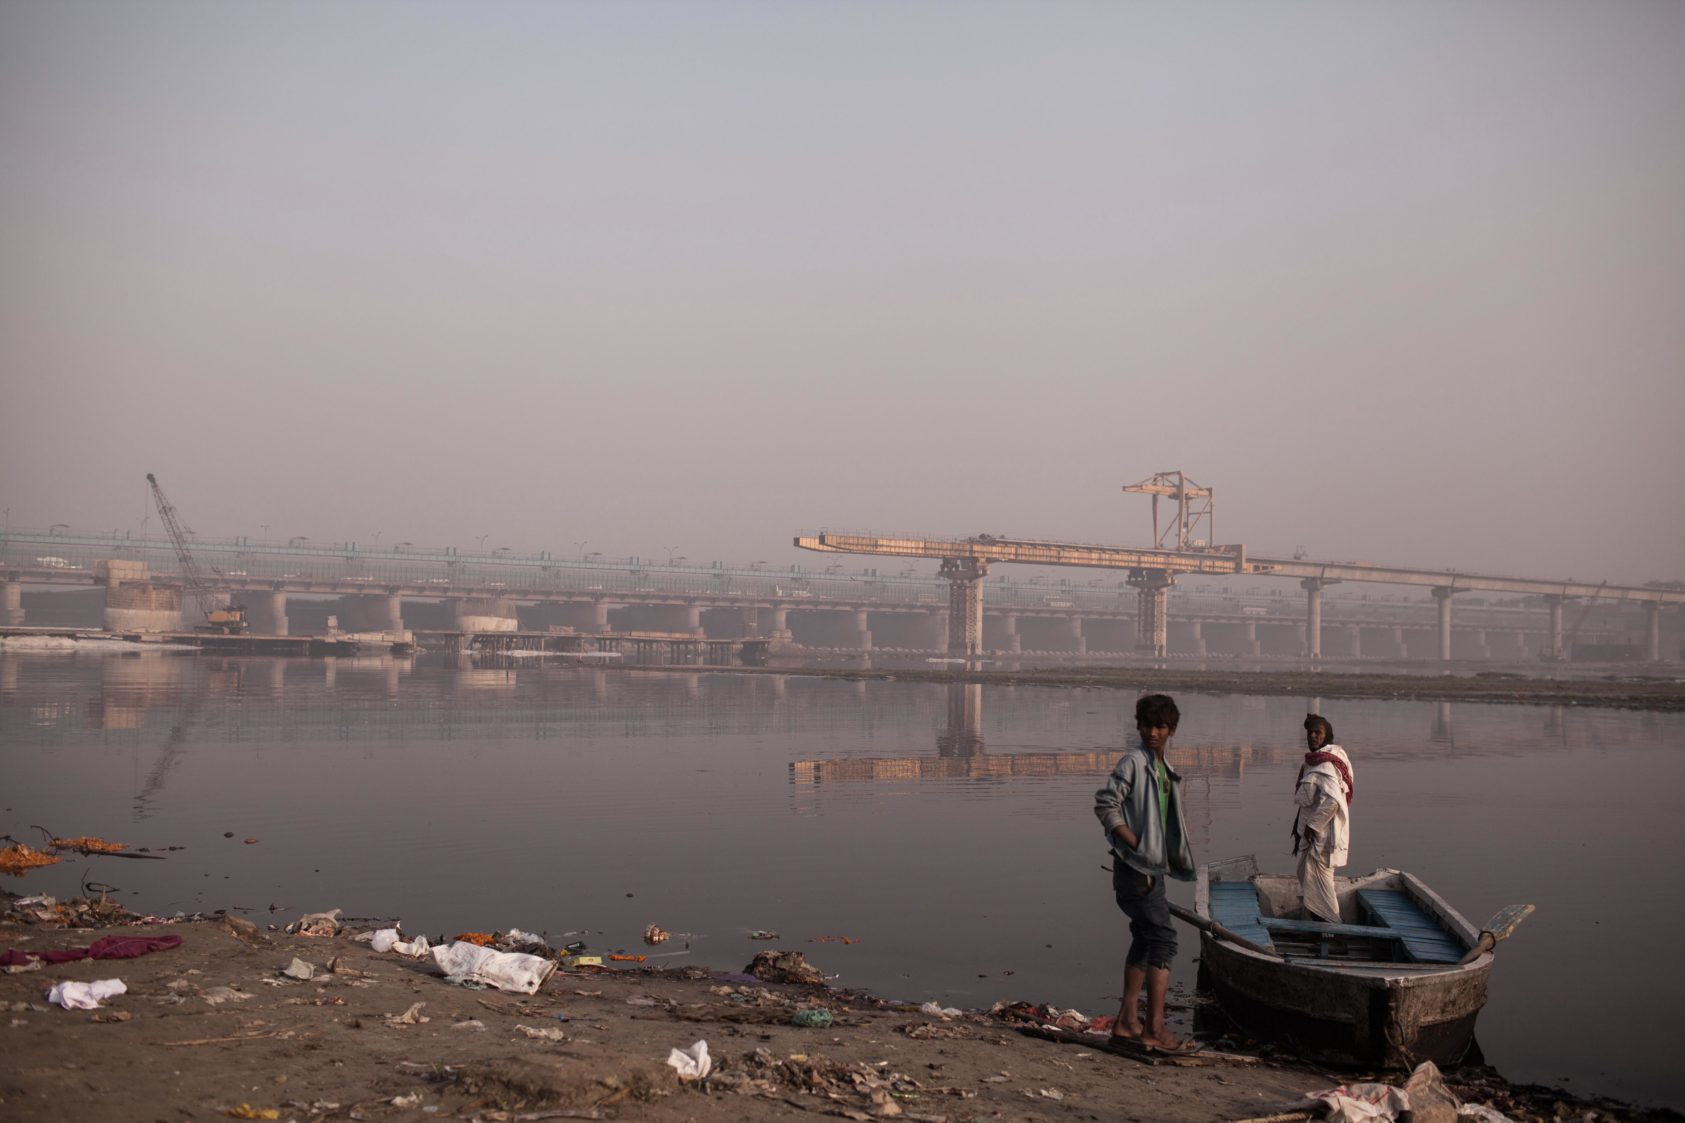 A father son duo who helped people to cross the Yamuna River